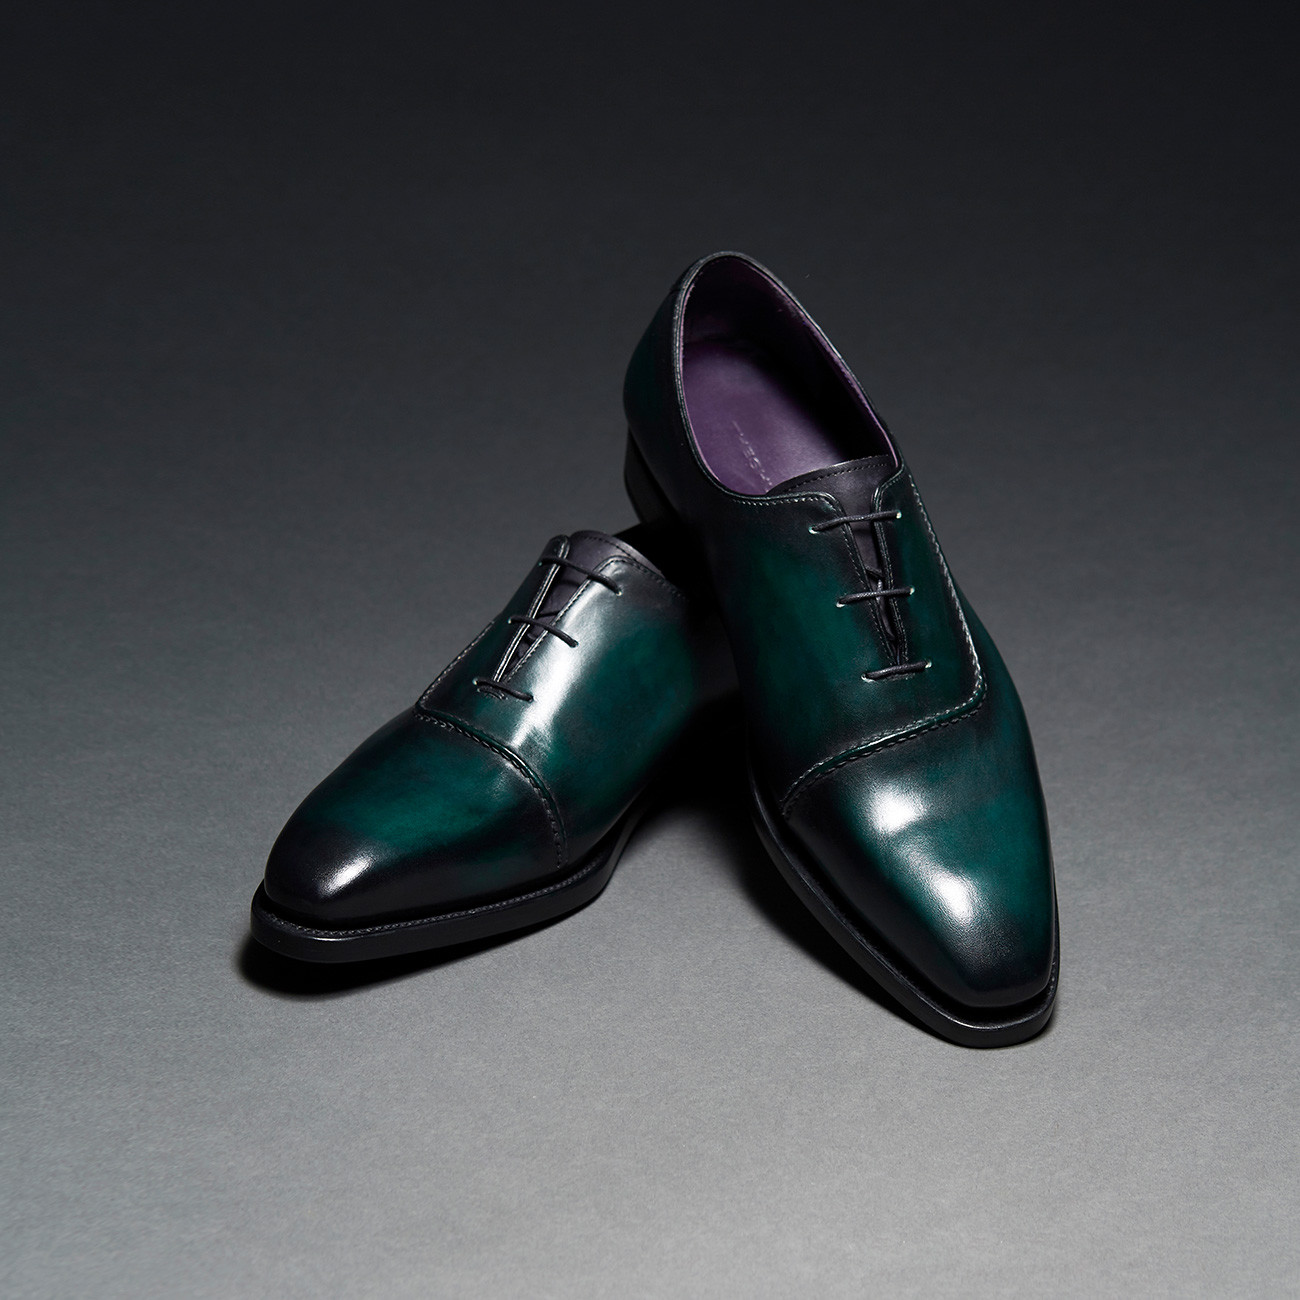 [Custommania X The shuri] PATINA PLAIN TOE OXFORD OFR No.310